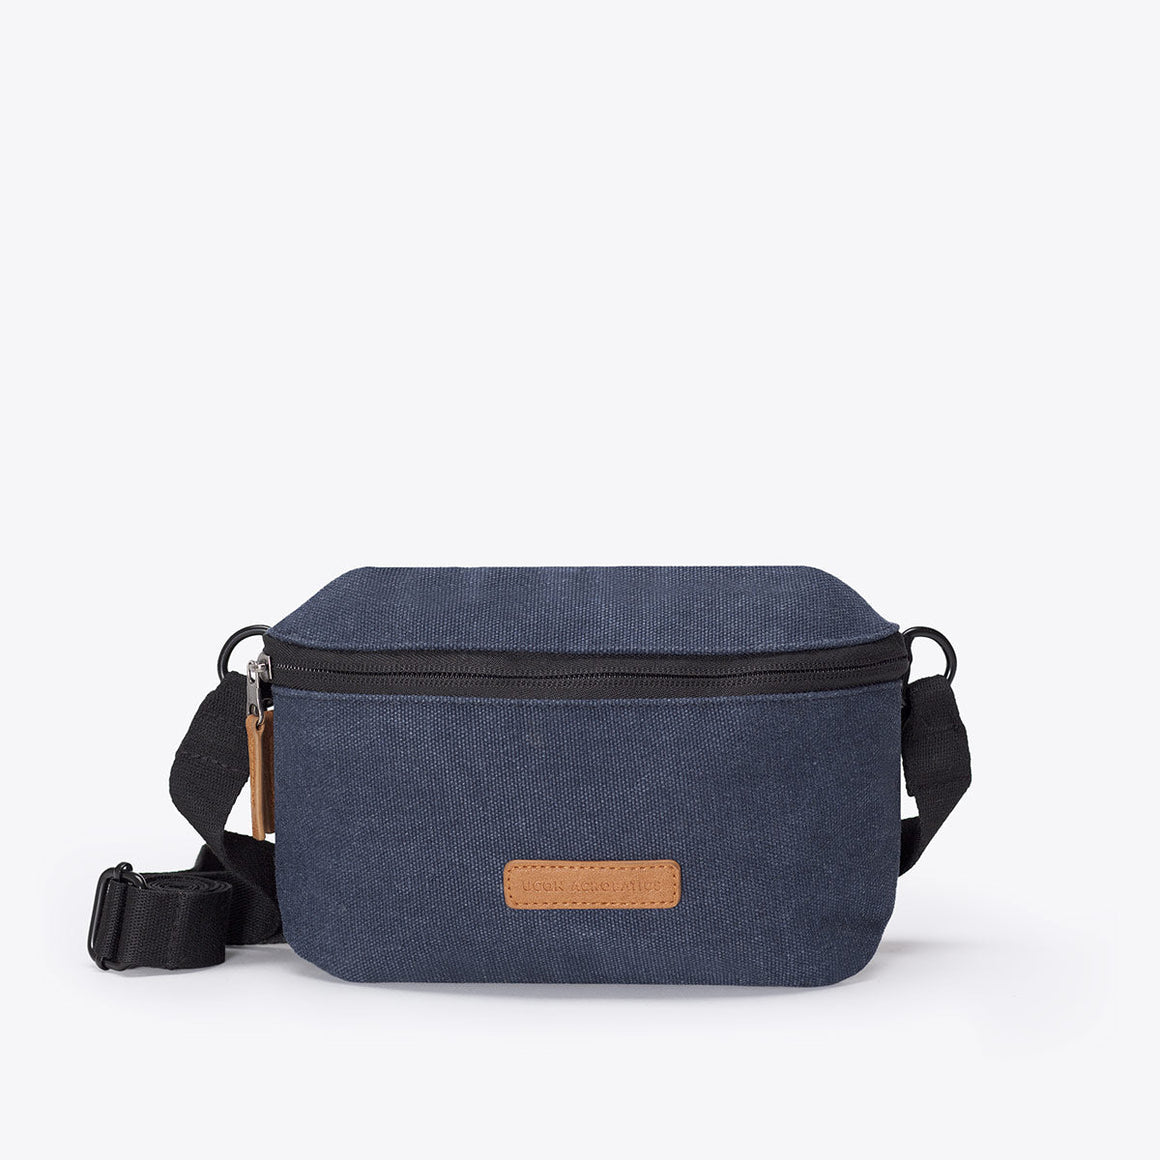 Ucon Acrobatics • Jona Bag • Original Series (dark navy)